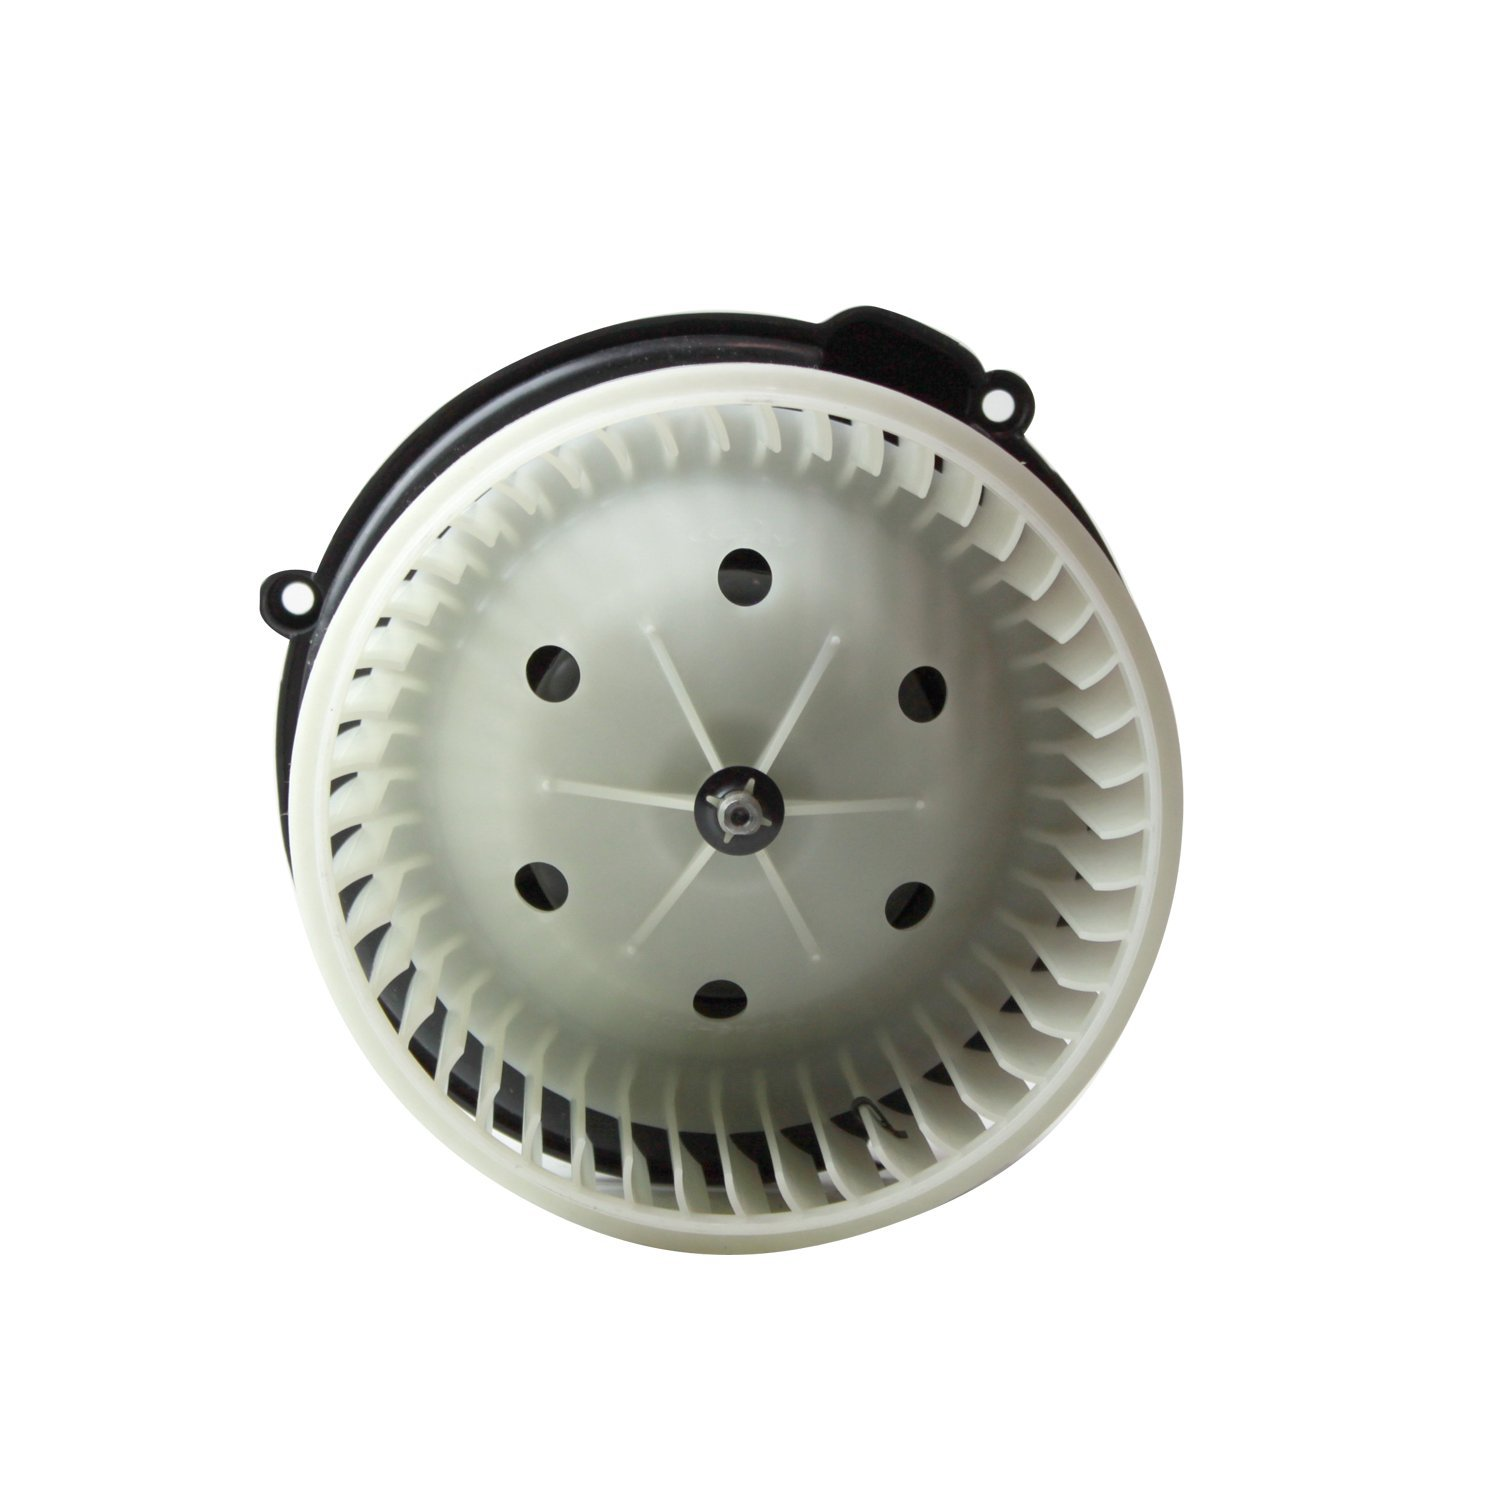 TYC 700211 Replacement Blower Assembly